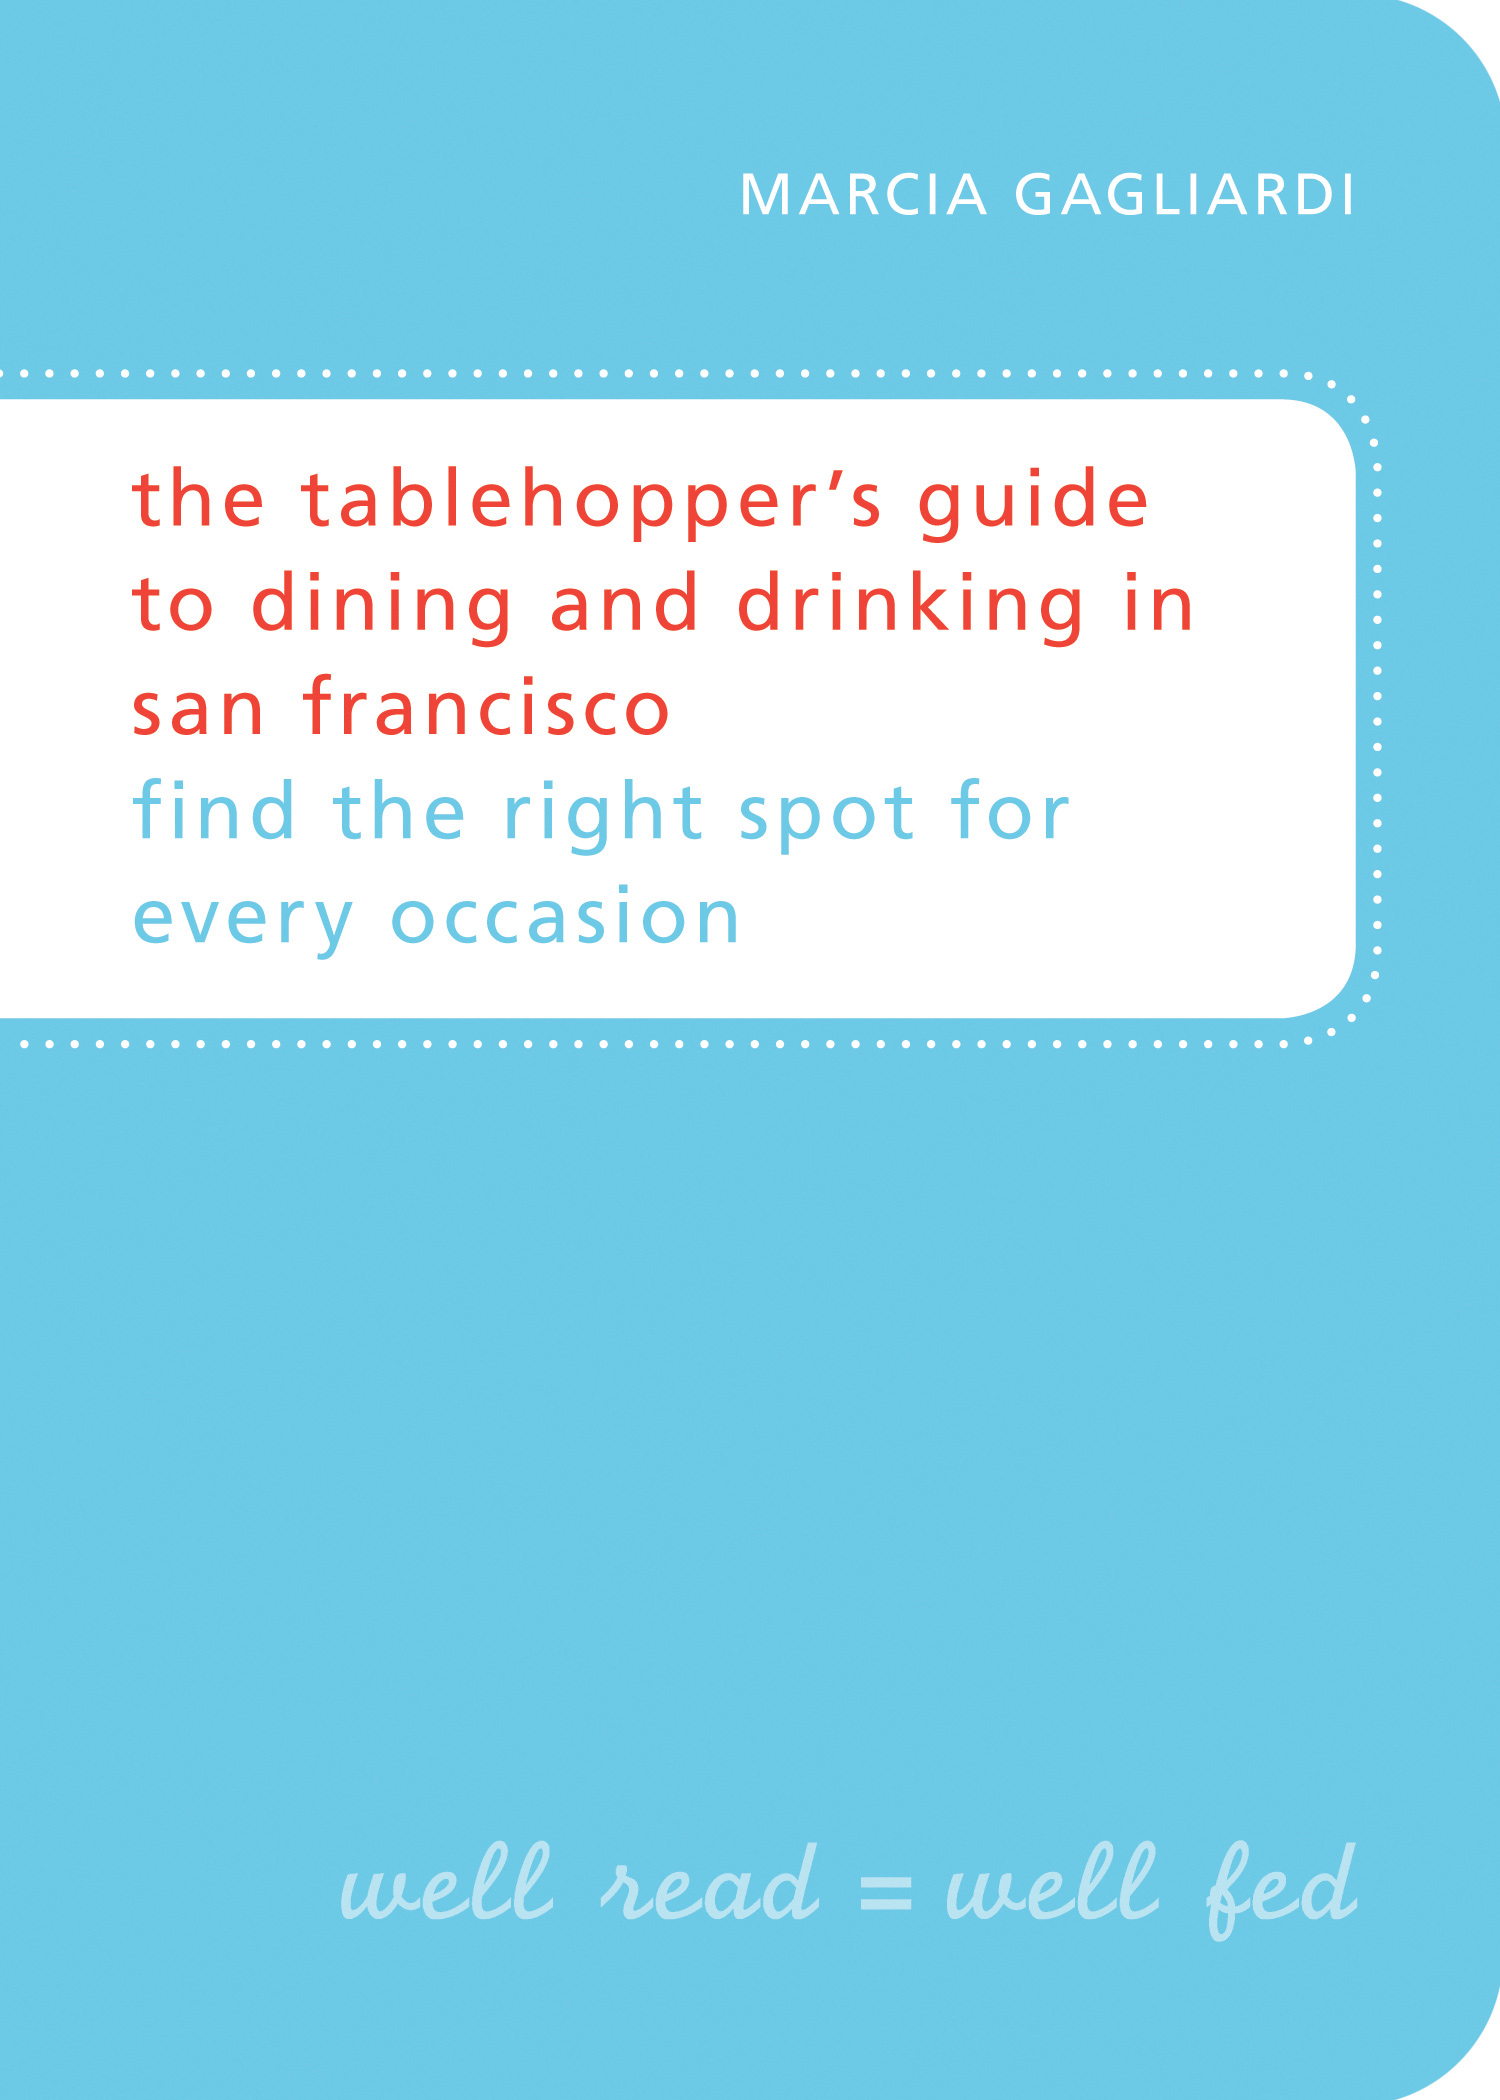 The Tablehopper's Guide to Dining and Drinking in San Francisco: Find the Right Spot for Every Occasion.